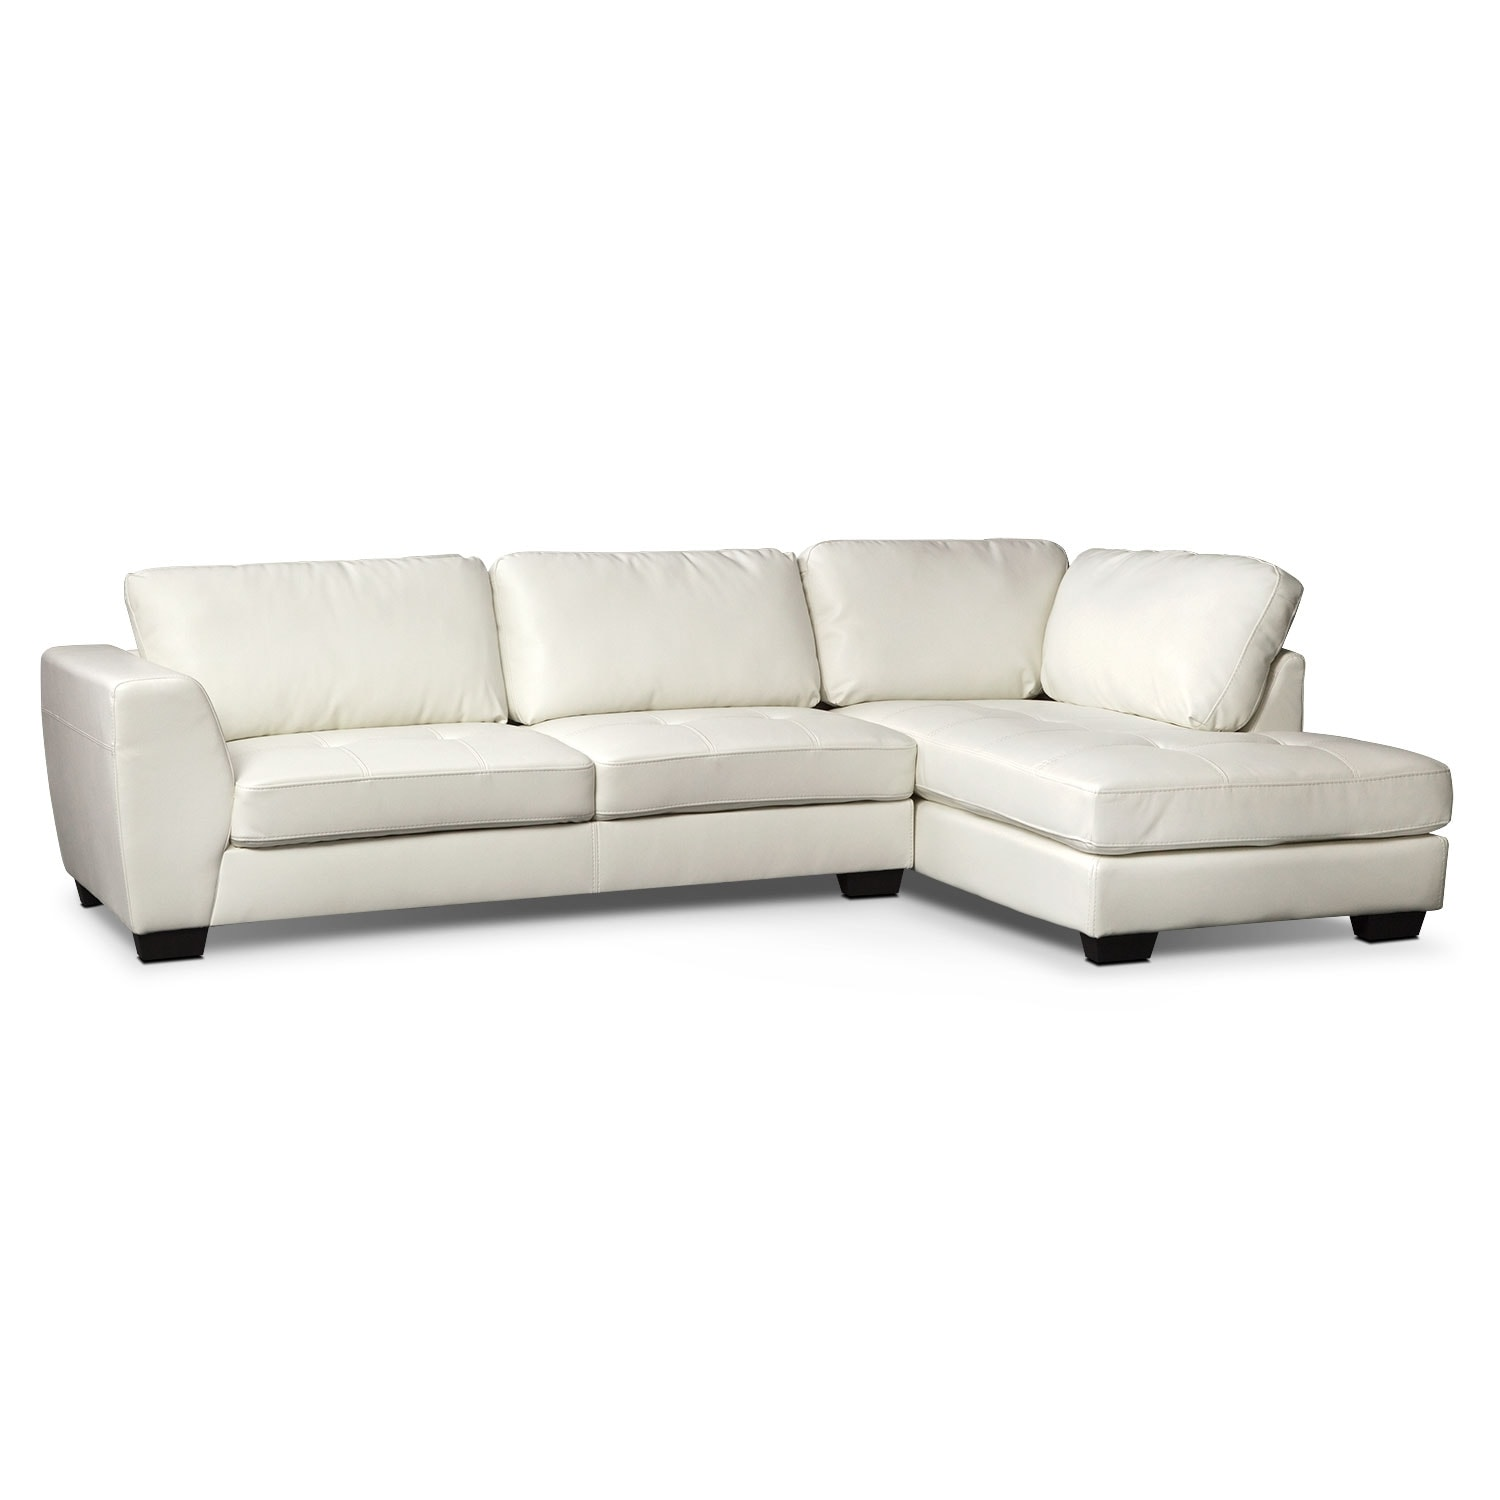 Ciera III 2 Pc. Sectional (Reverse)